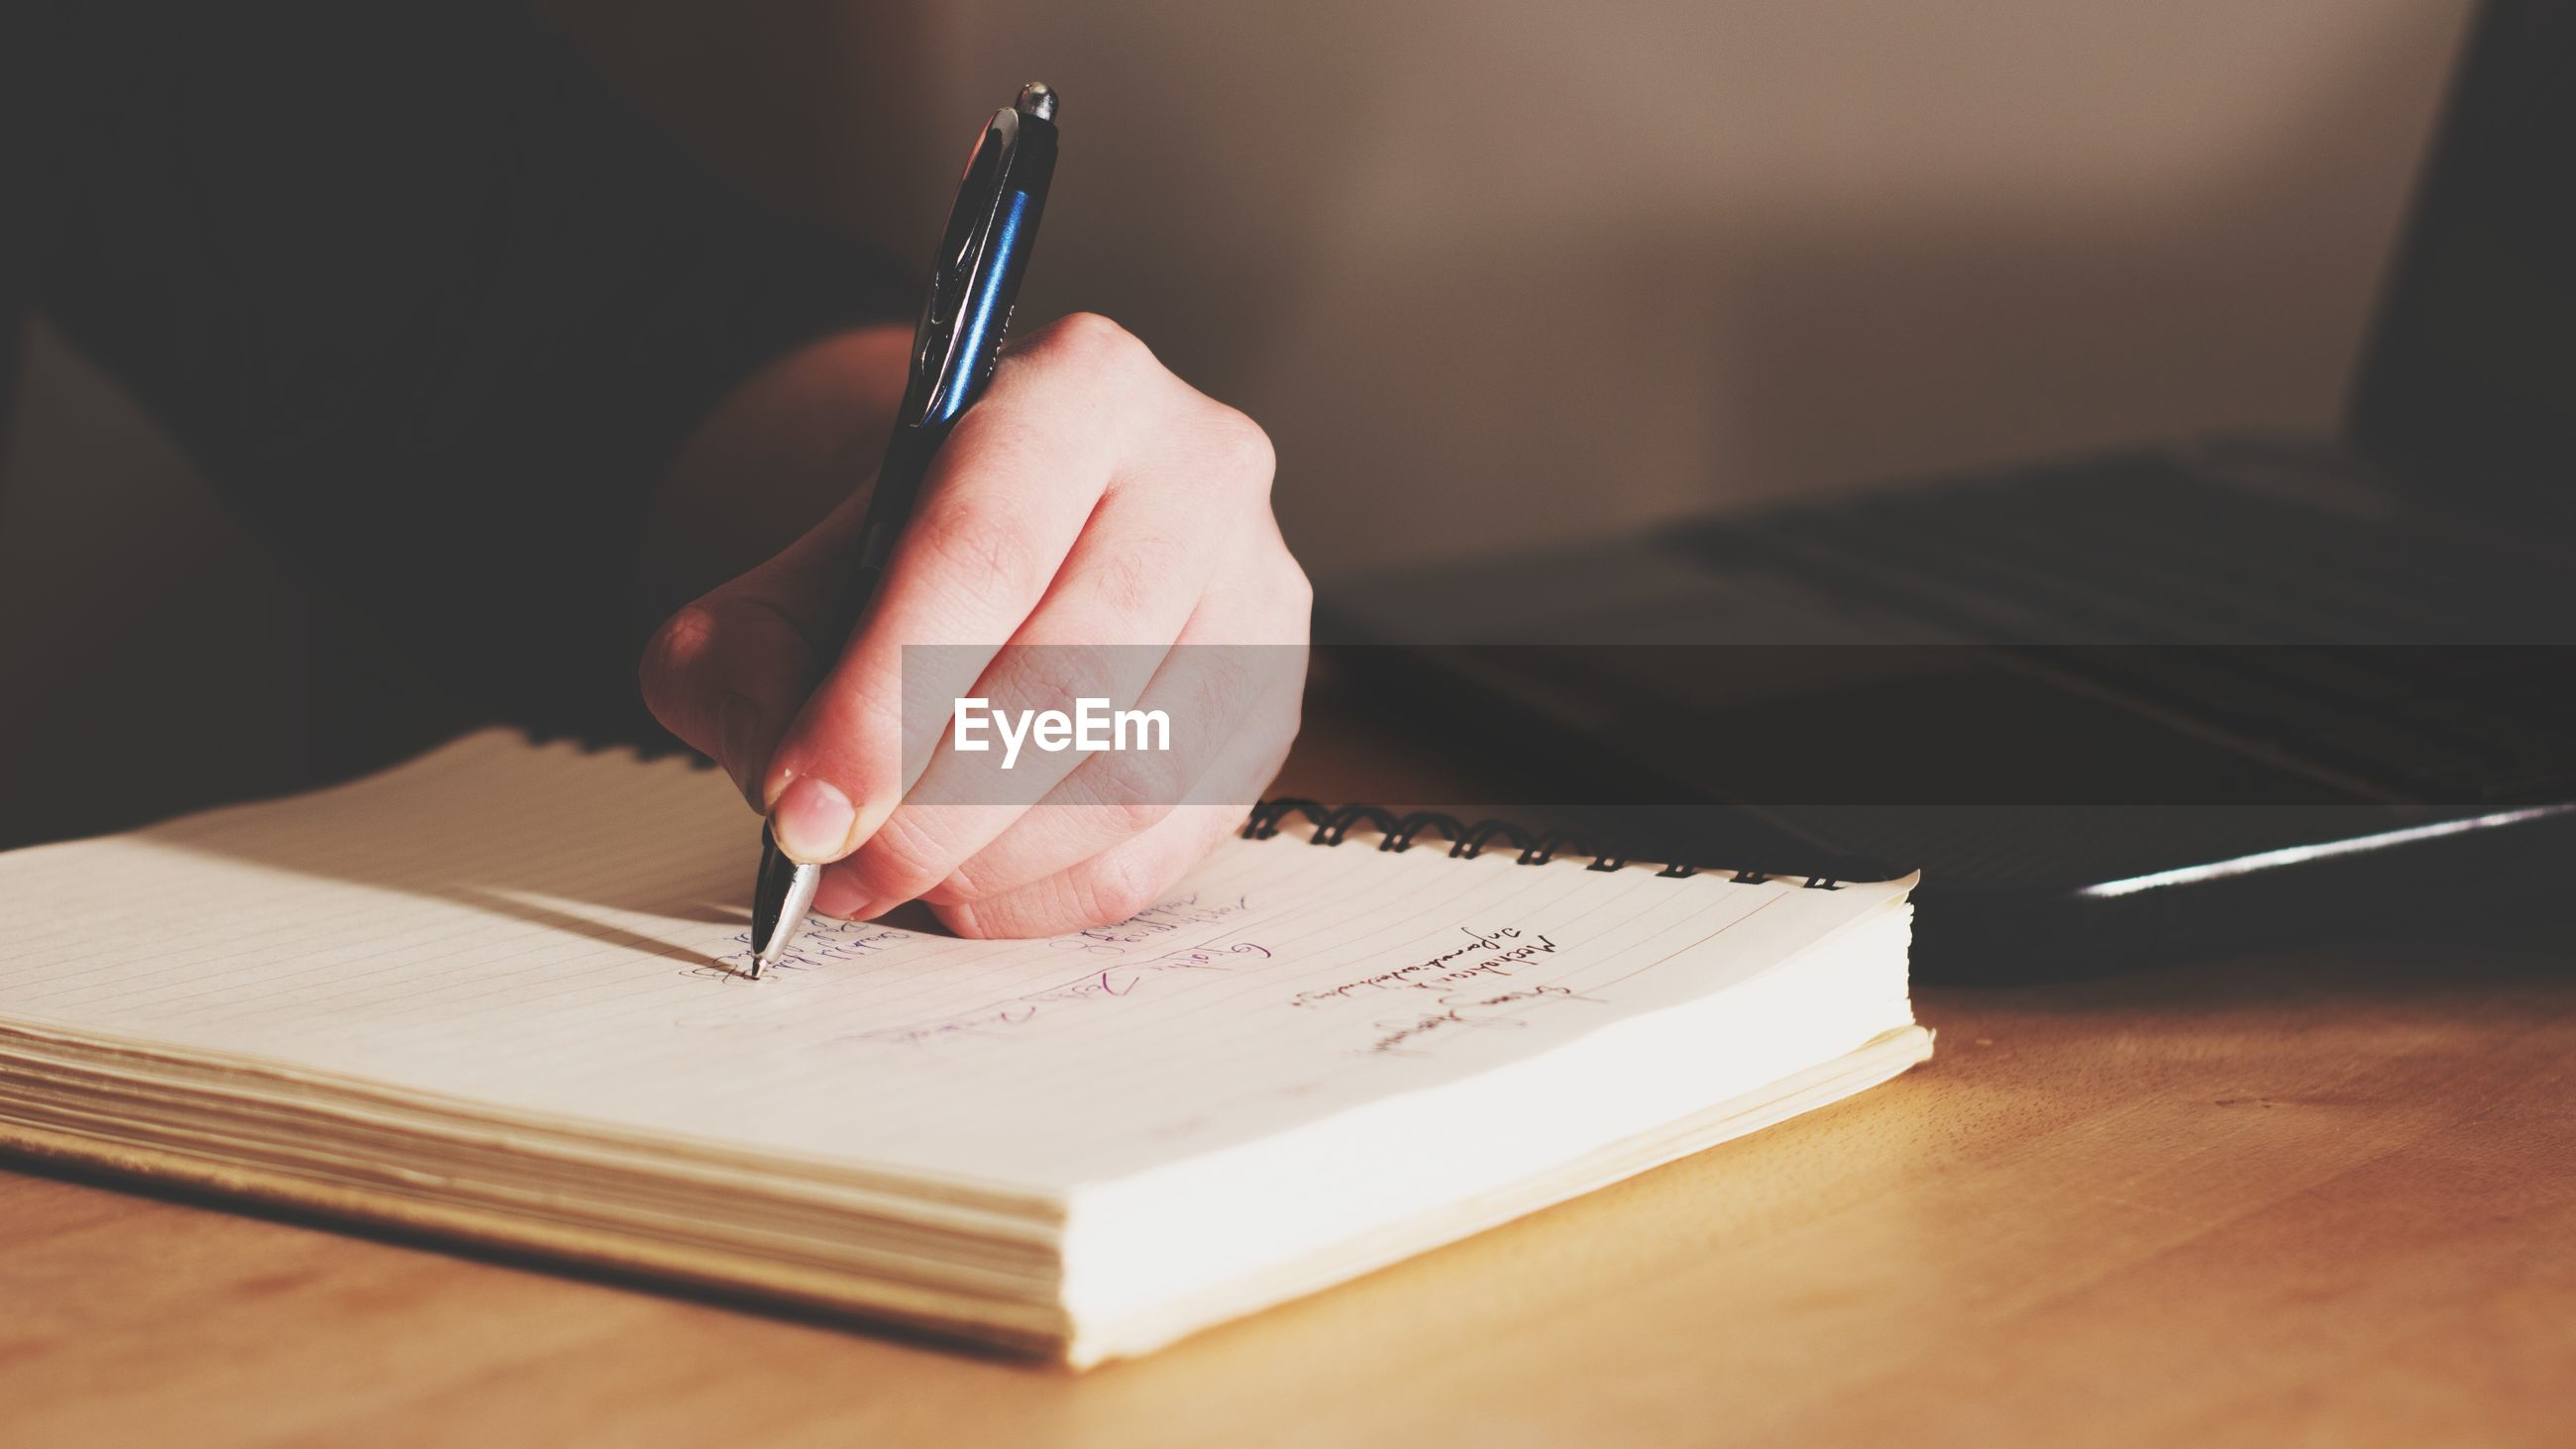 human hand, writing, hand, pen, one person, book, table, human body part, paper, publication, real people, indoors, holding, selective focus, writing instrument, education, communication, unrecognizable person, adult, note pad, finger, studying